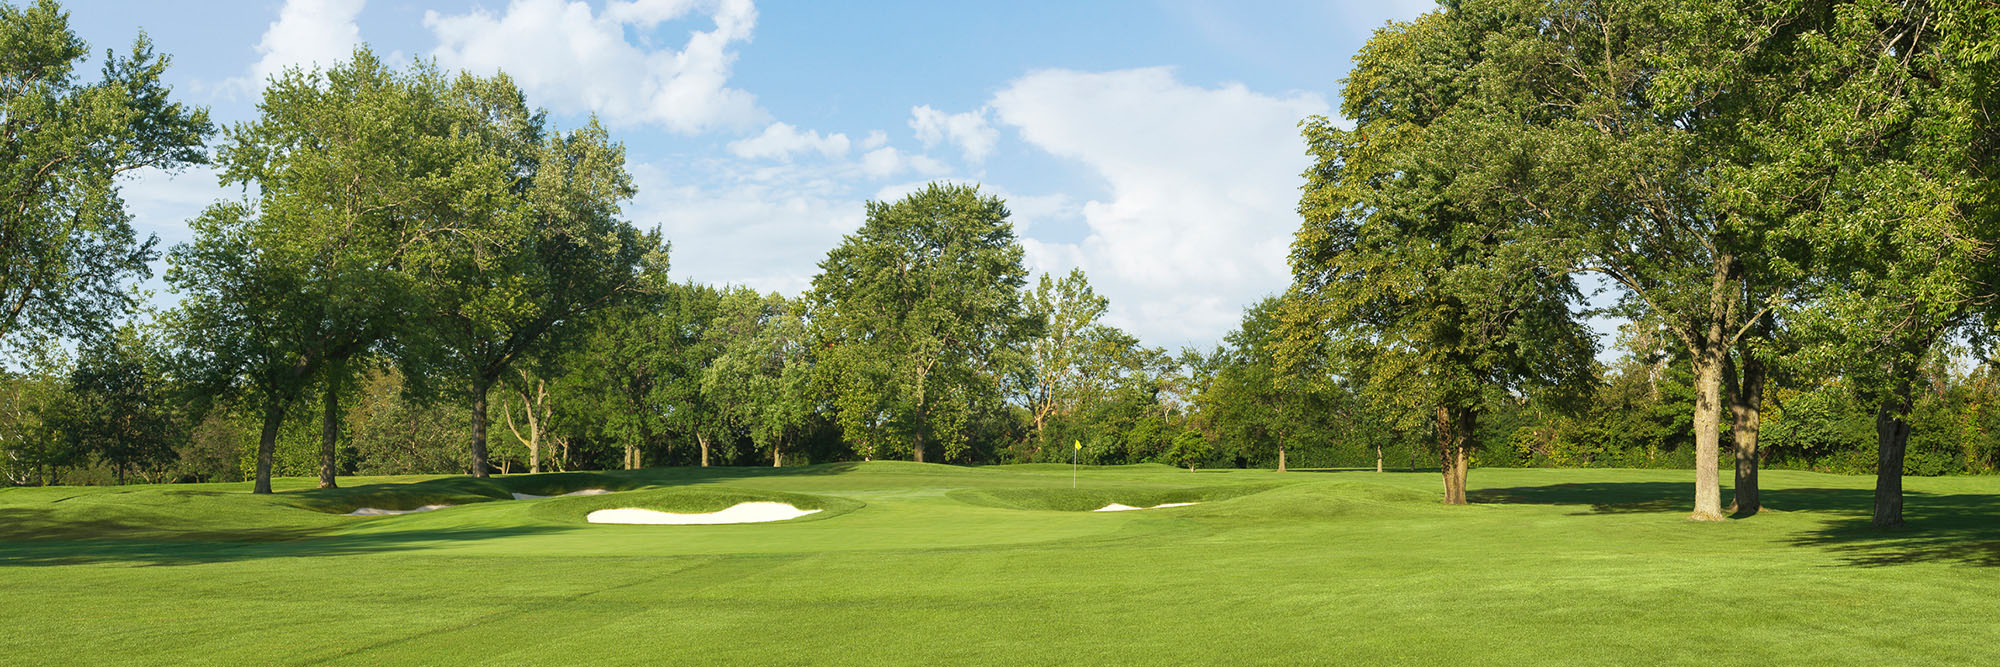 Golf Course Image - Olympia Fields North No. 8